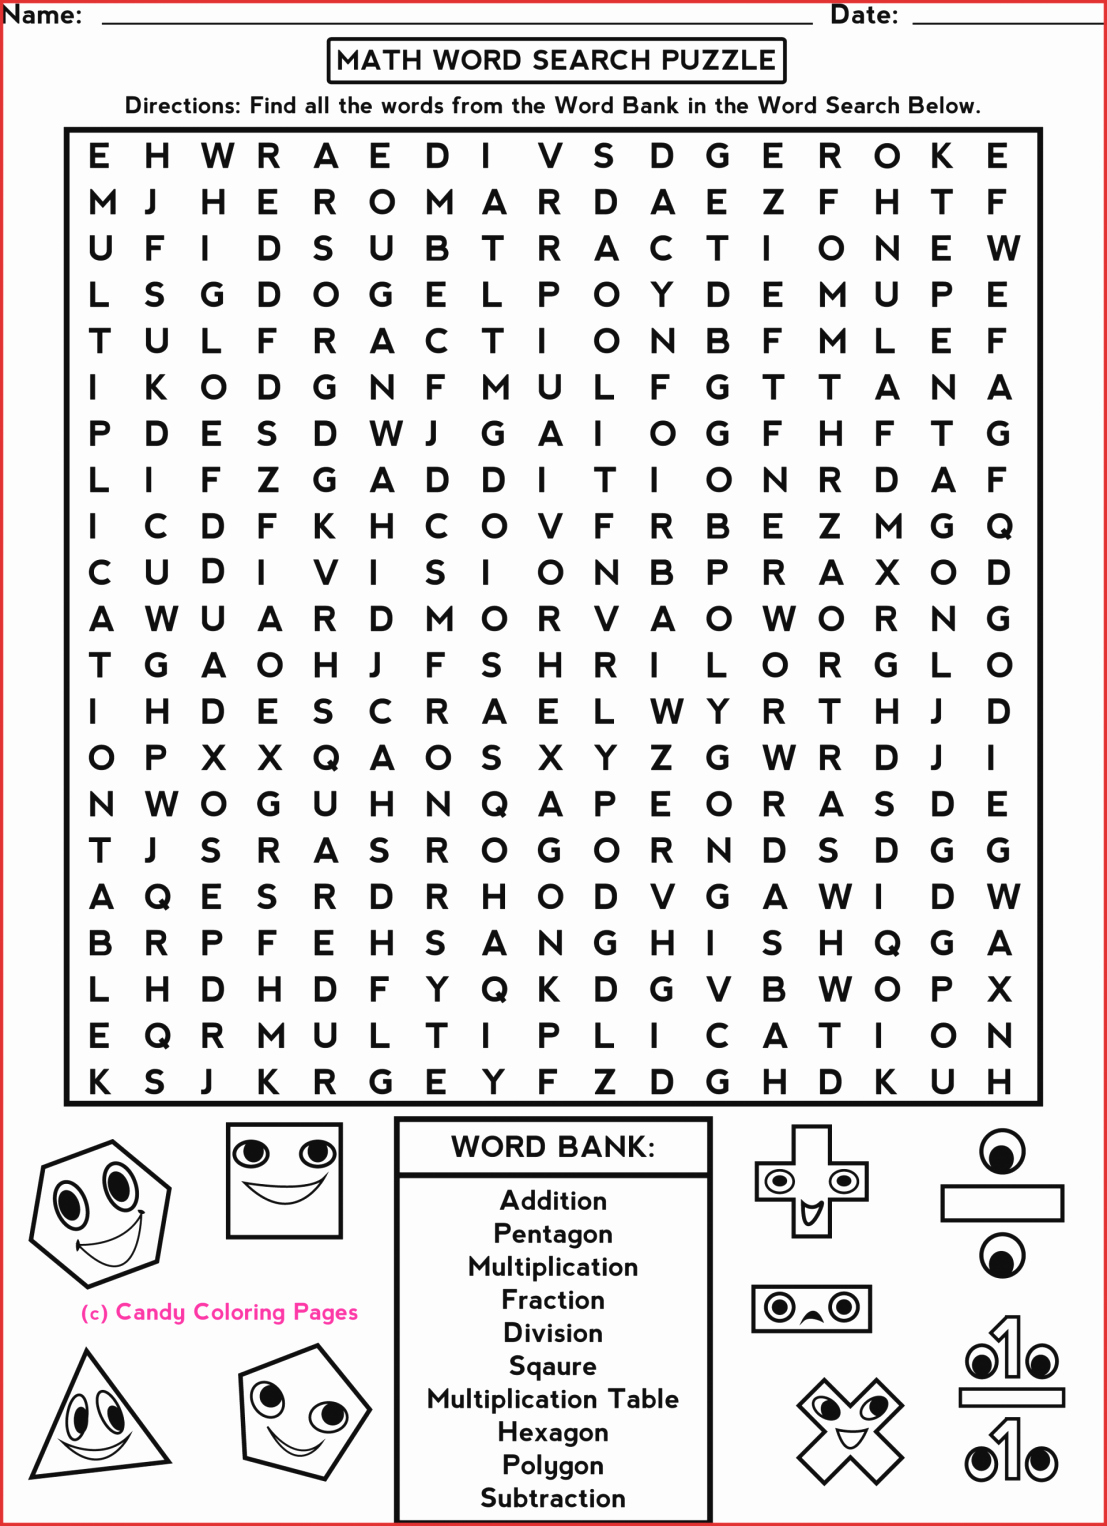 7Th Grade Crossword Puzzles Fresh 7Th Grade Math Word Search - Printable Crosswords For 6Th Grade